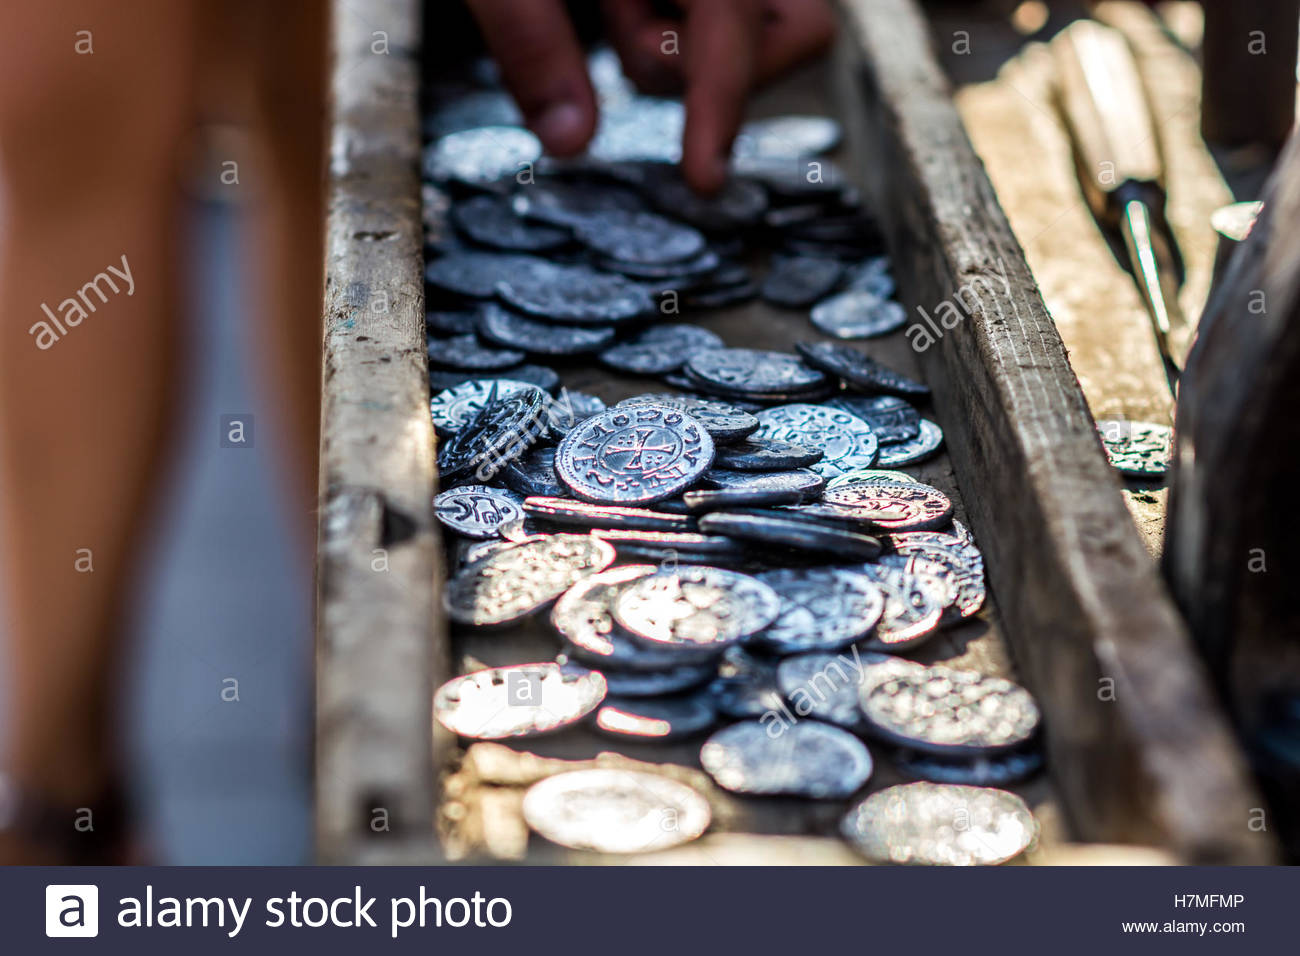 Ancient coins minted shown in a box - Stock Image